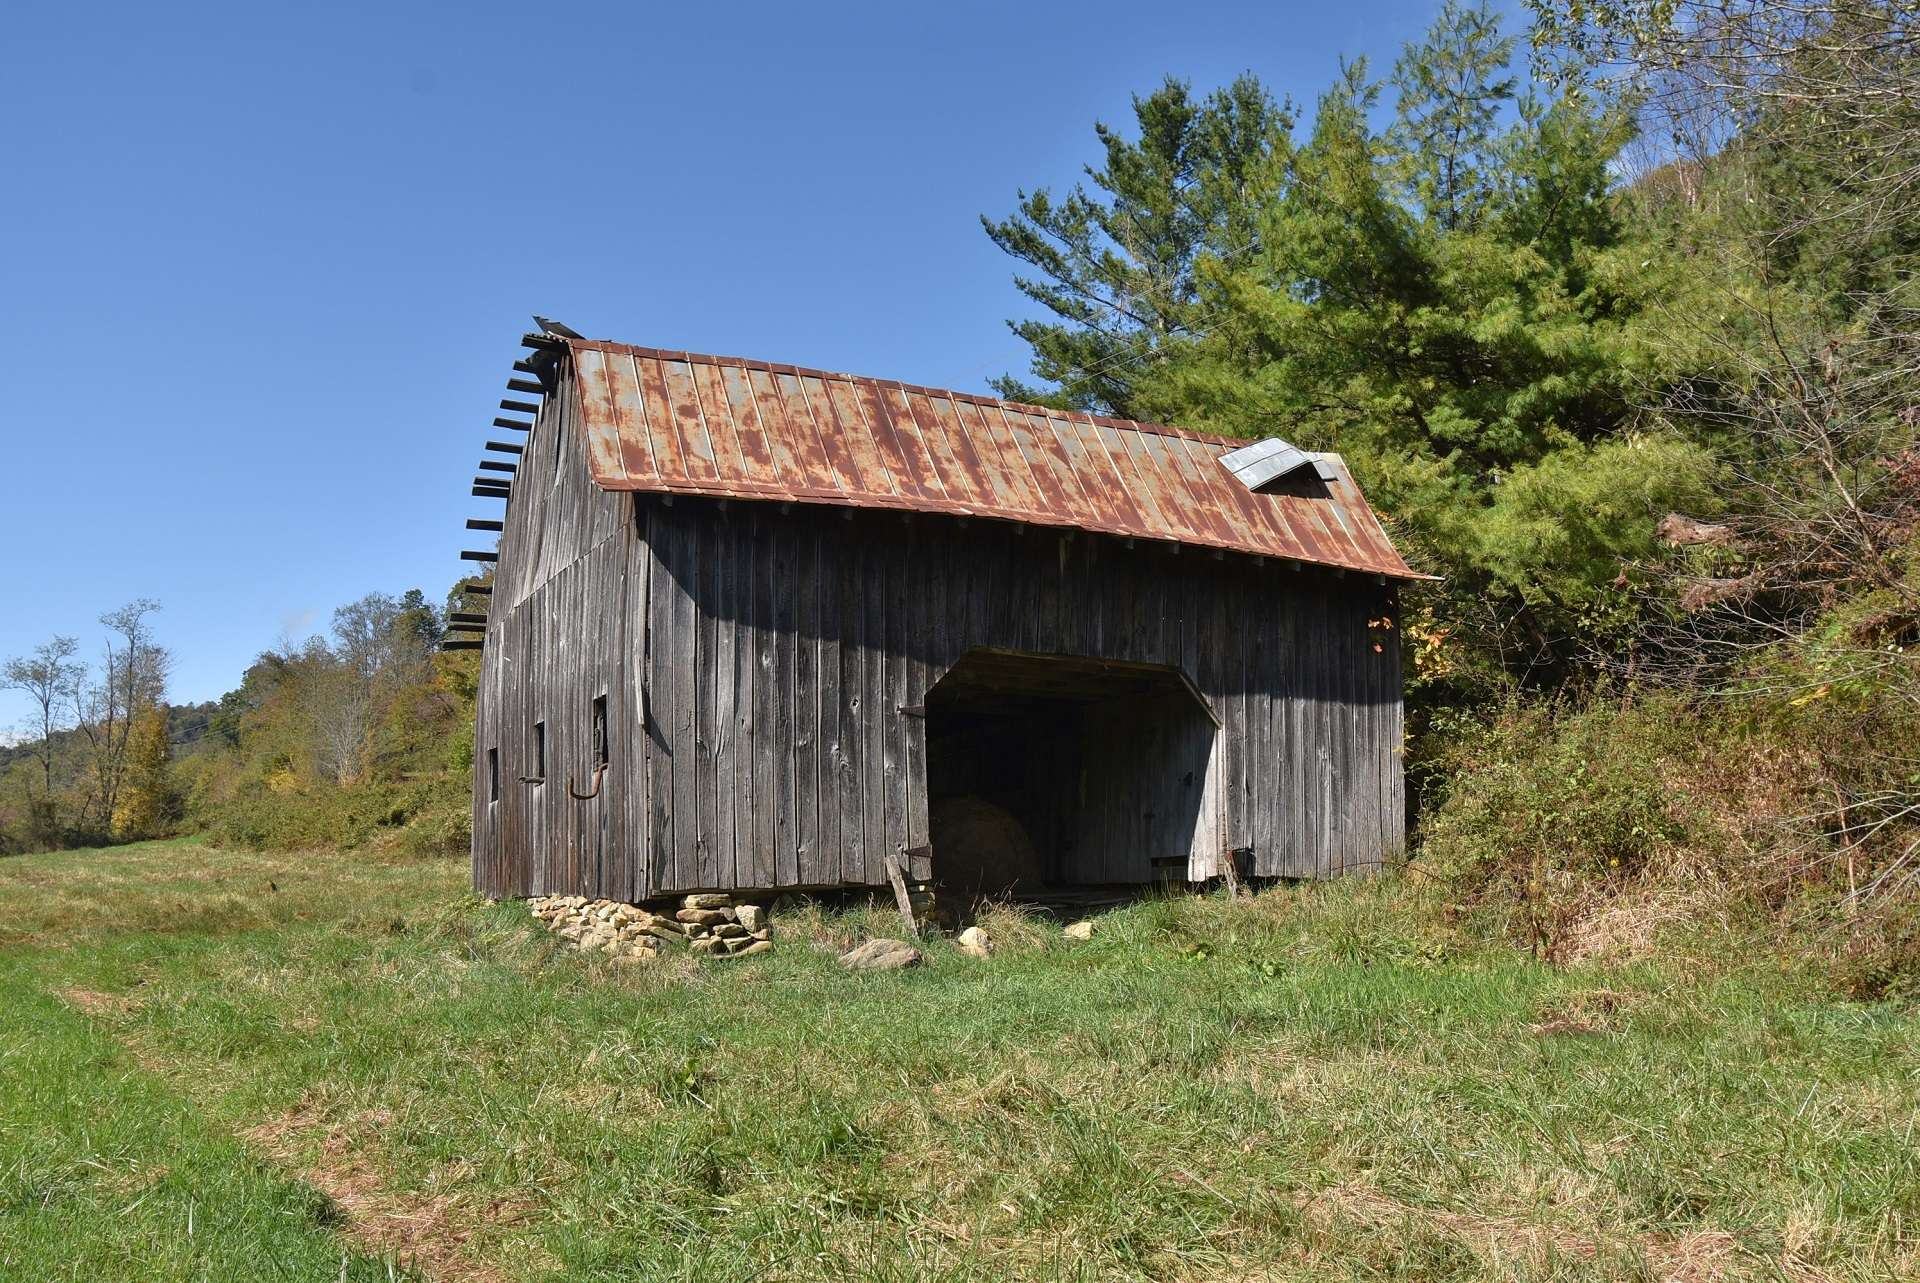 The property has plenty of barns and outbuildings for your farm animals and equipment.